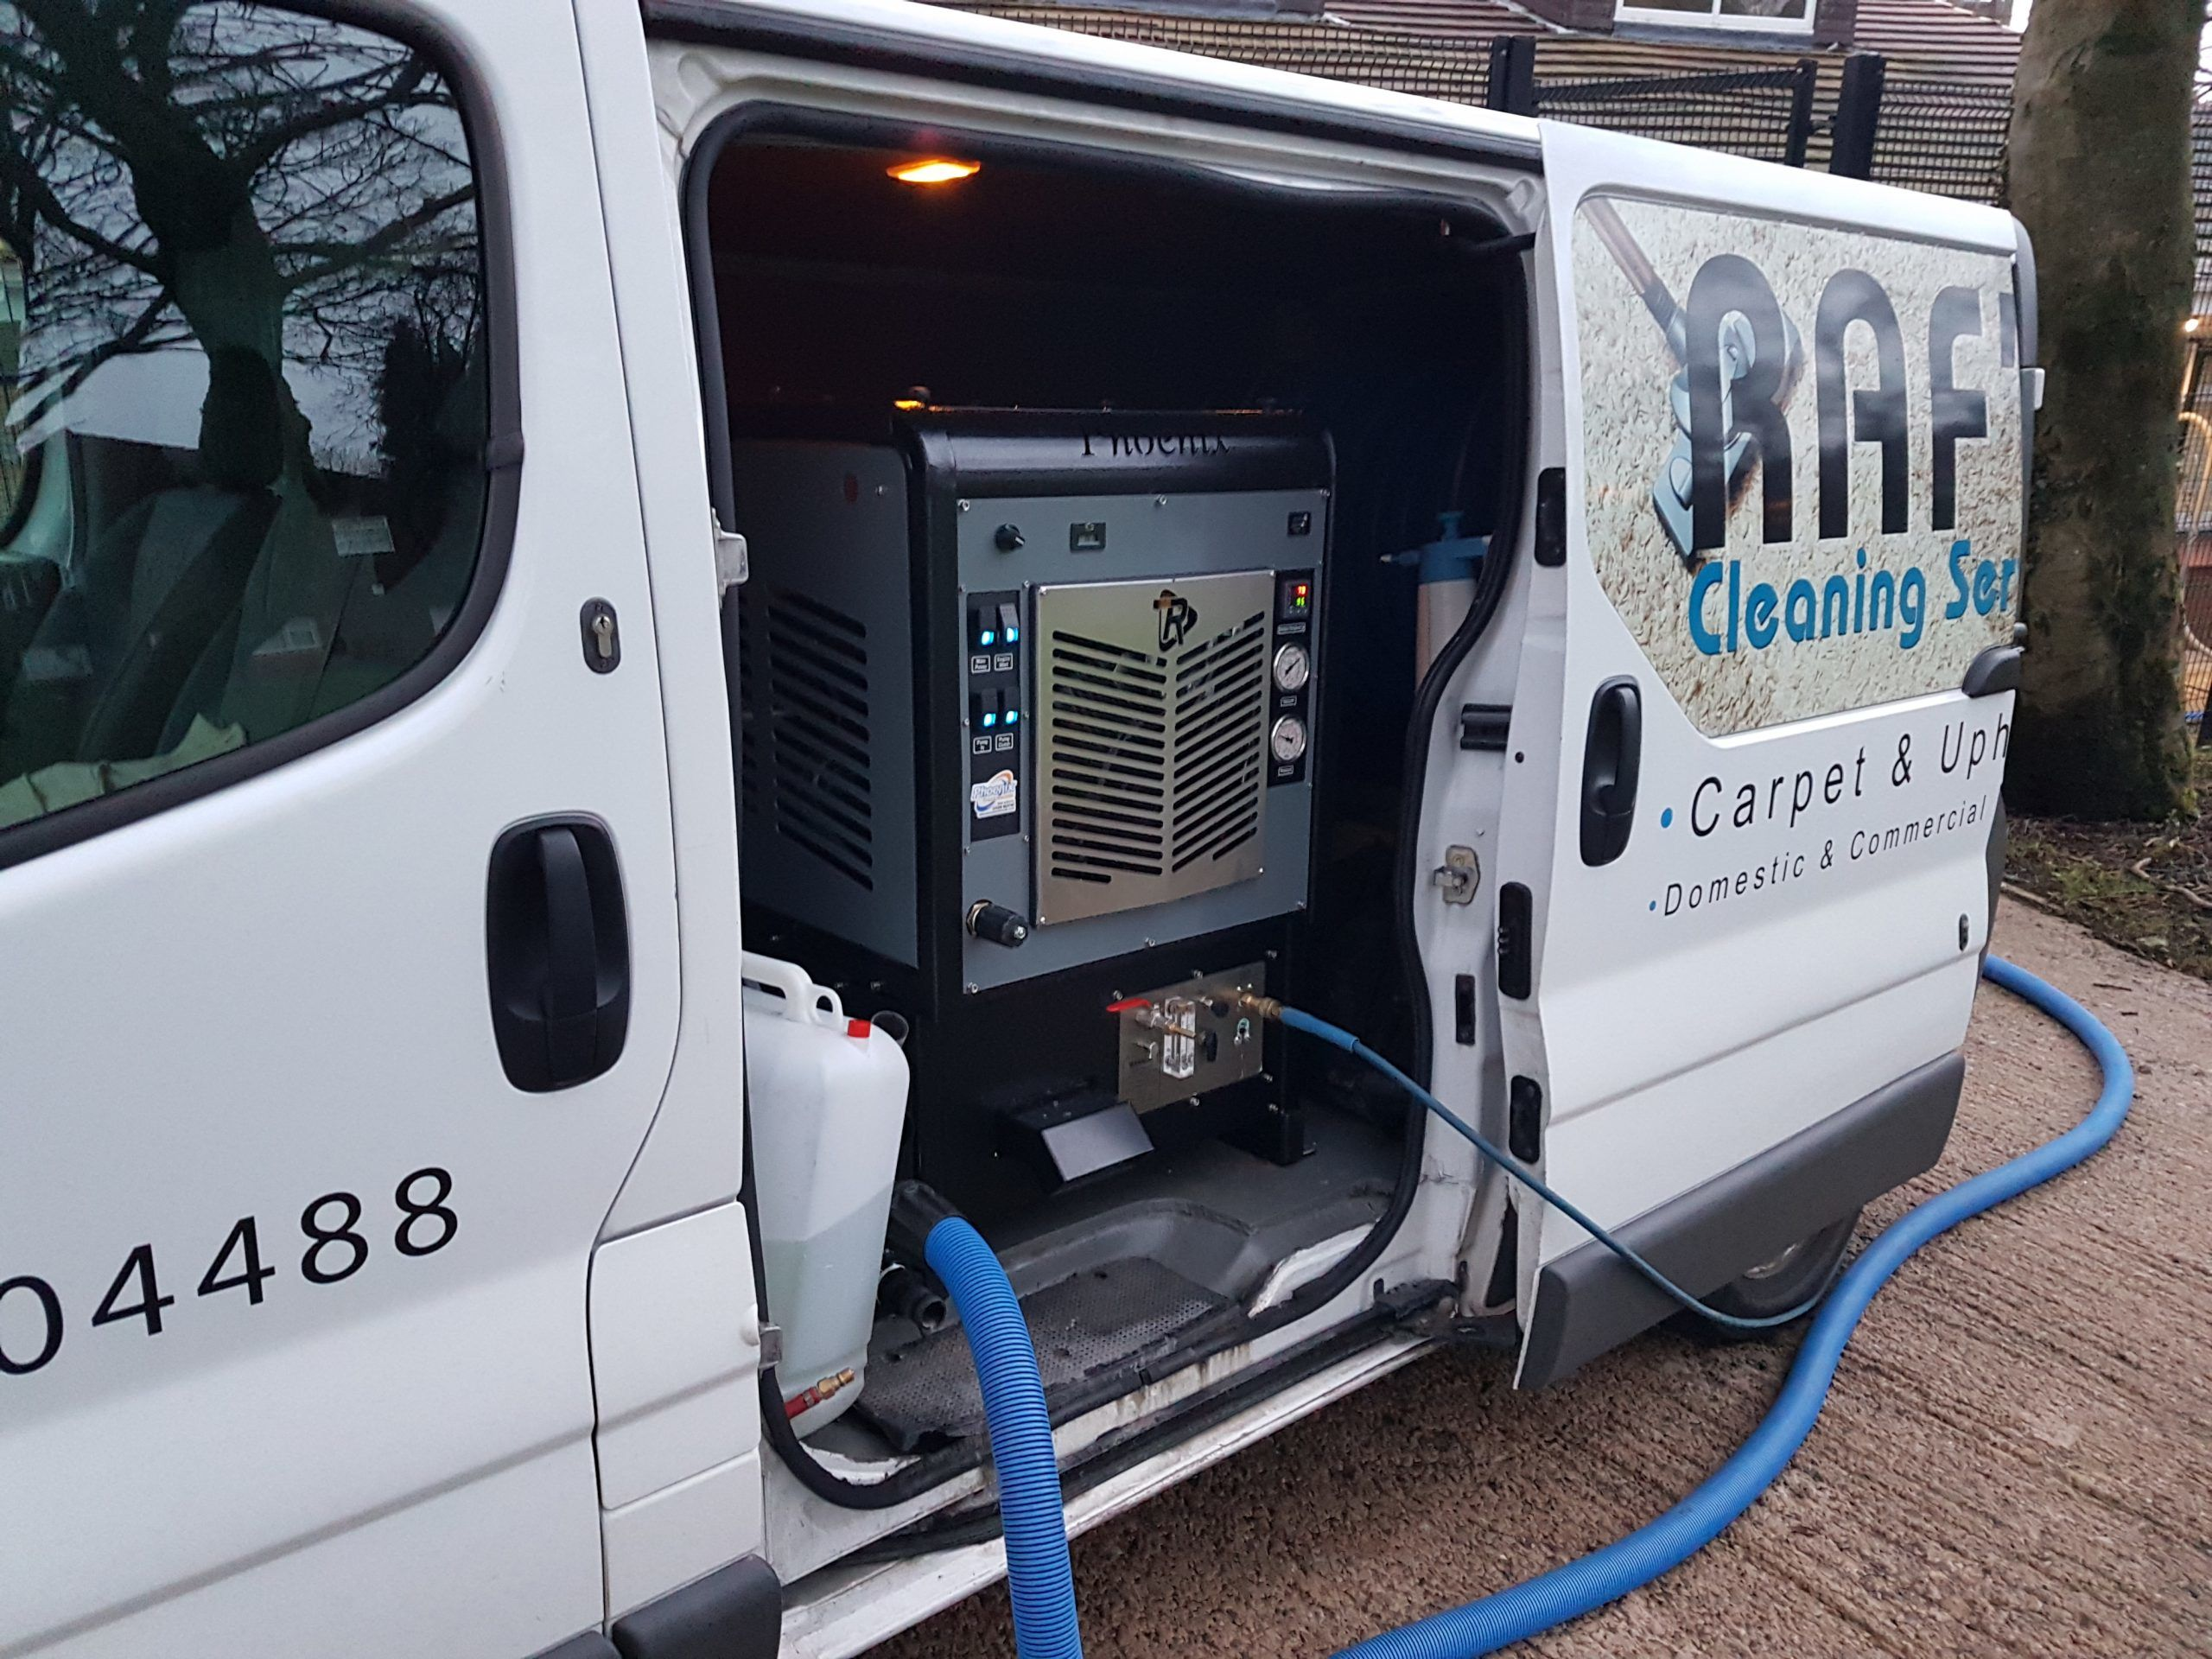 Carpet & upholstery cleaning Manchester